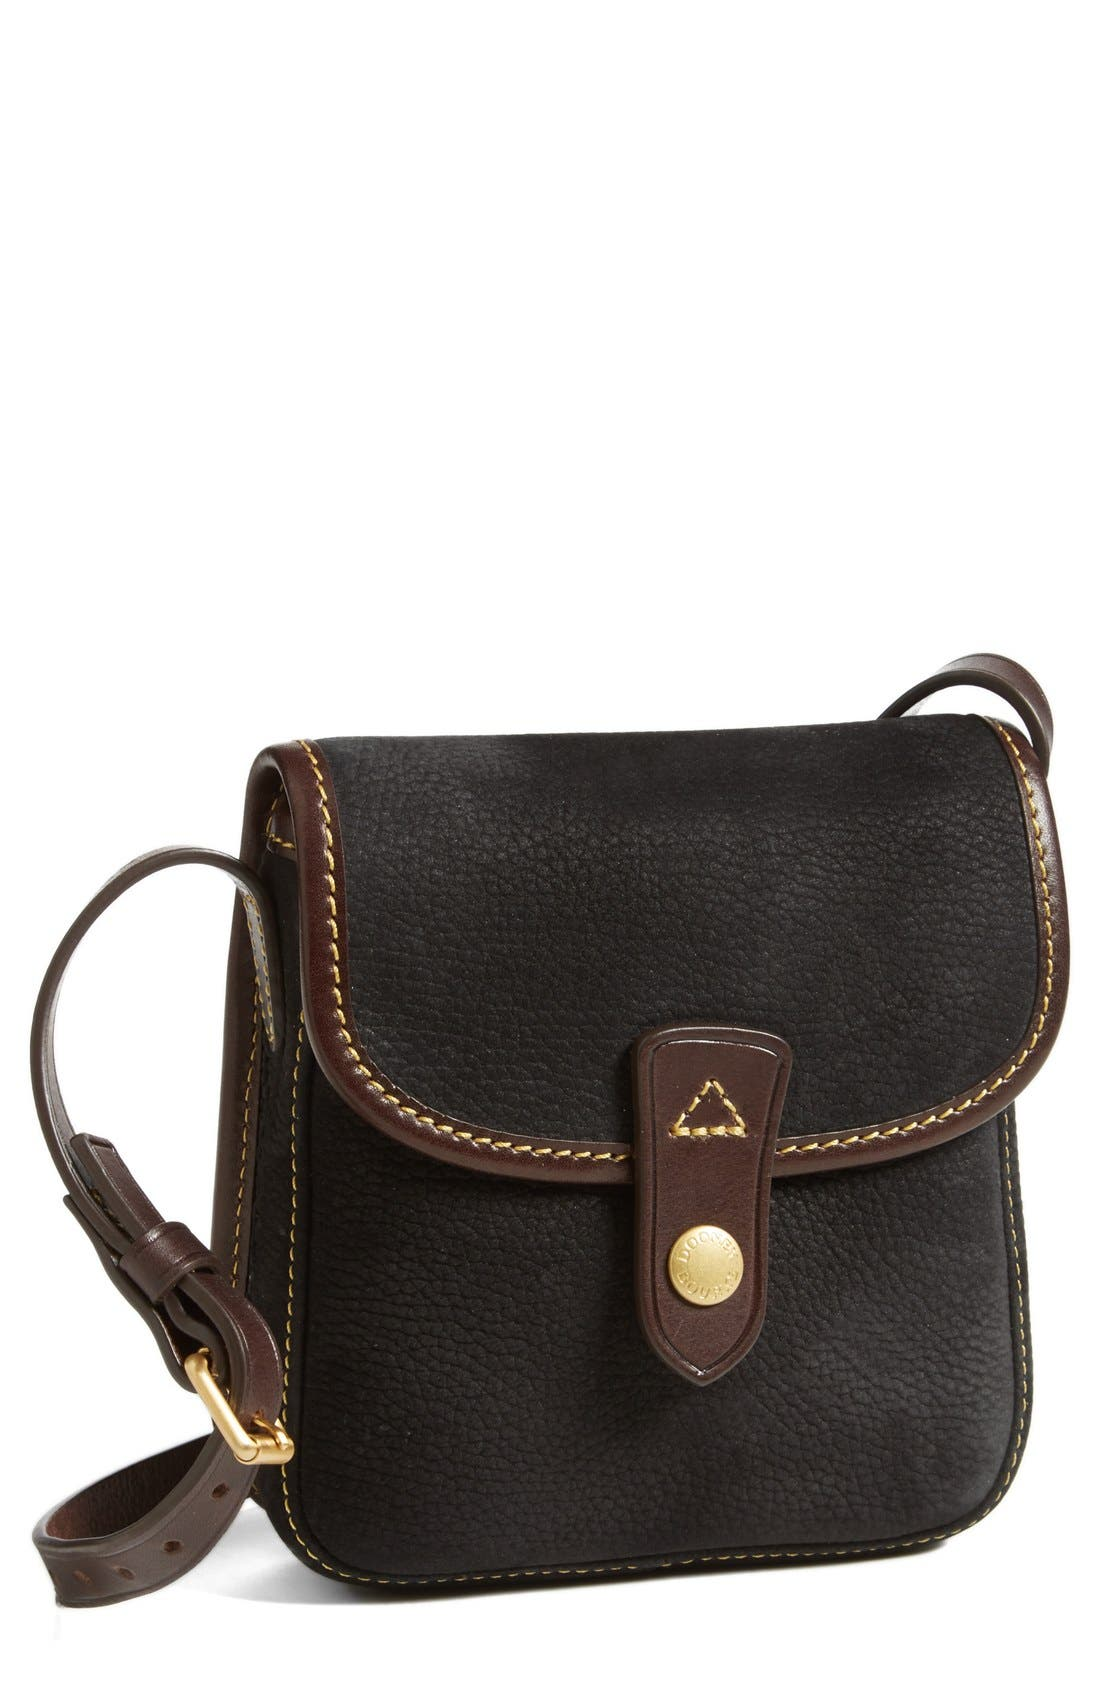 Alternate Image 1 Selected - Dooney & Bourke 'Small' Crossbody Bag